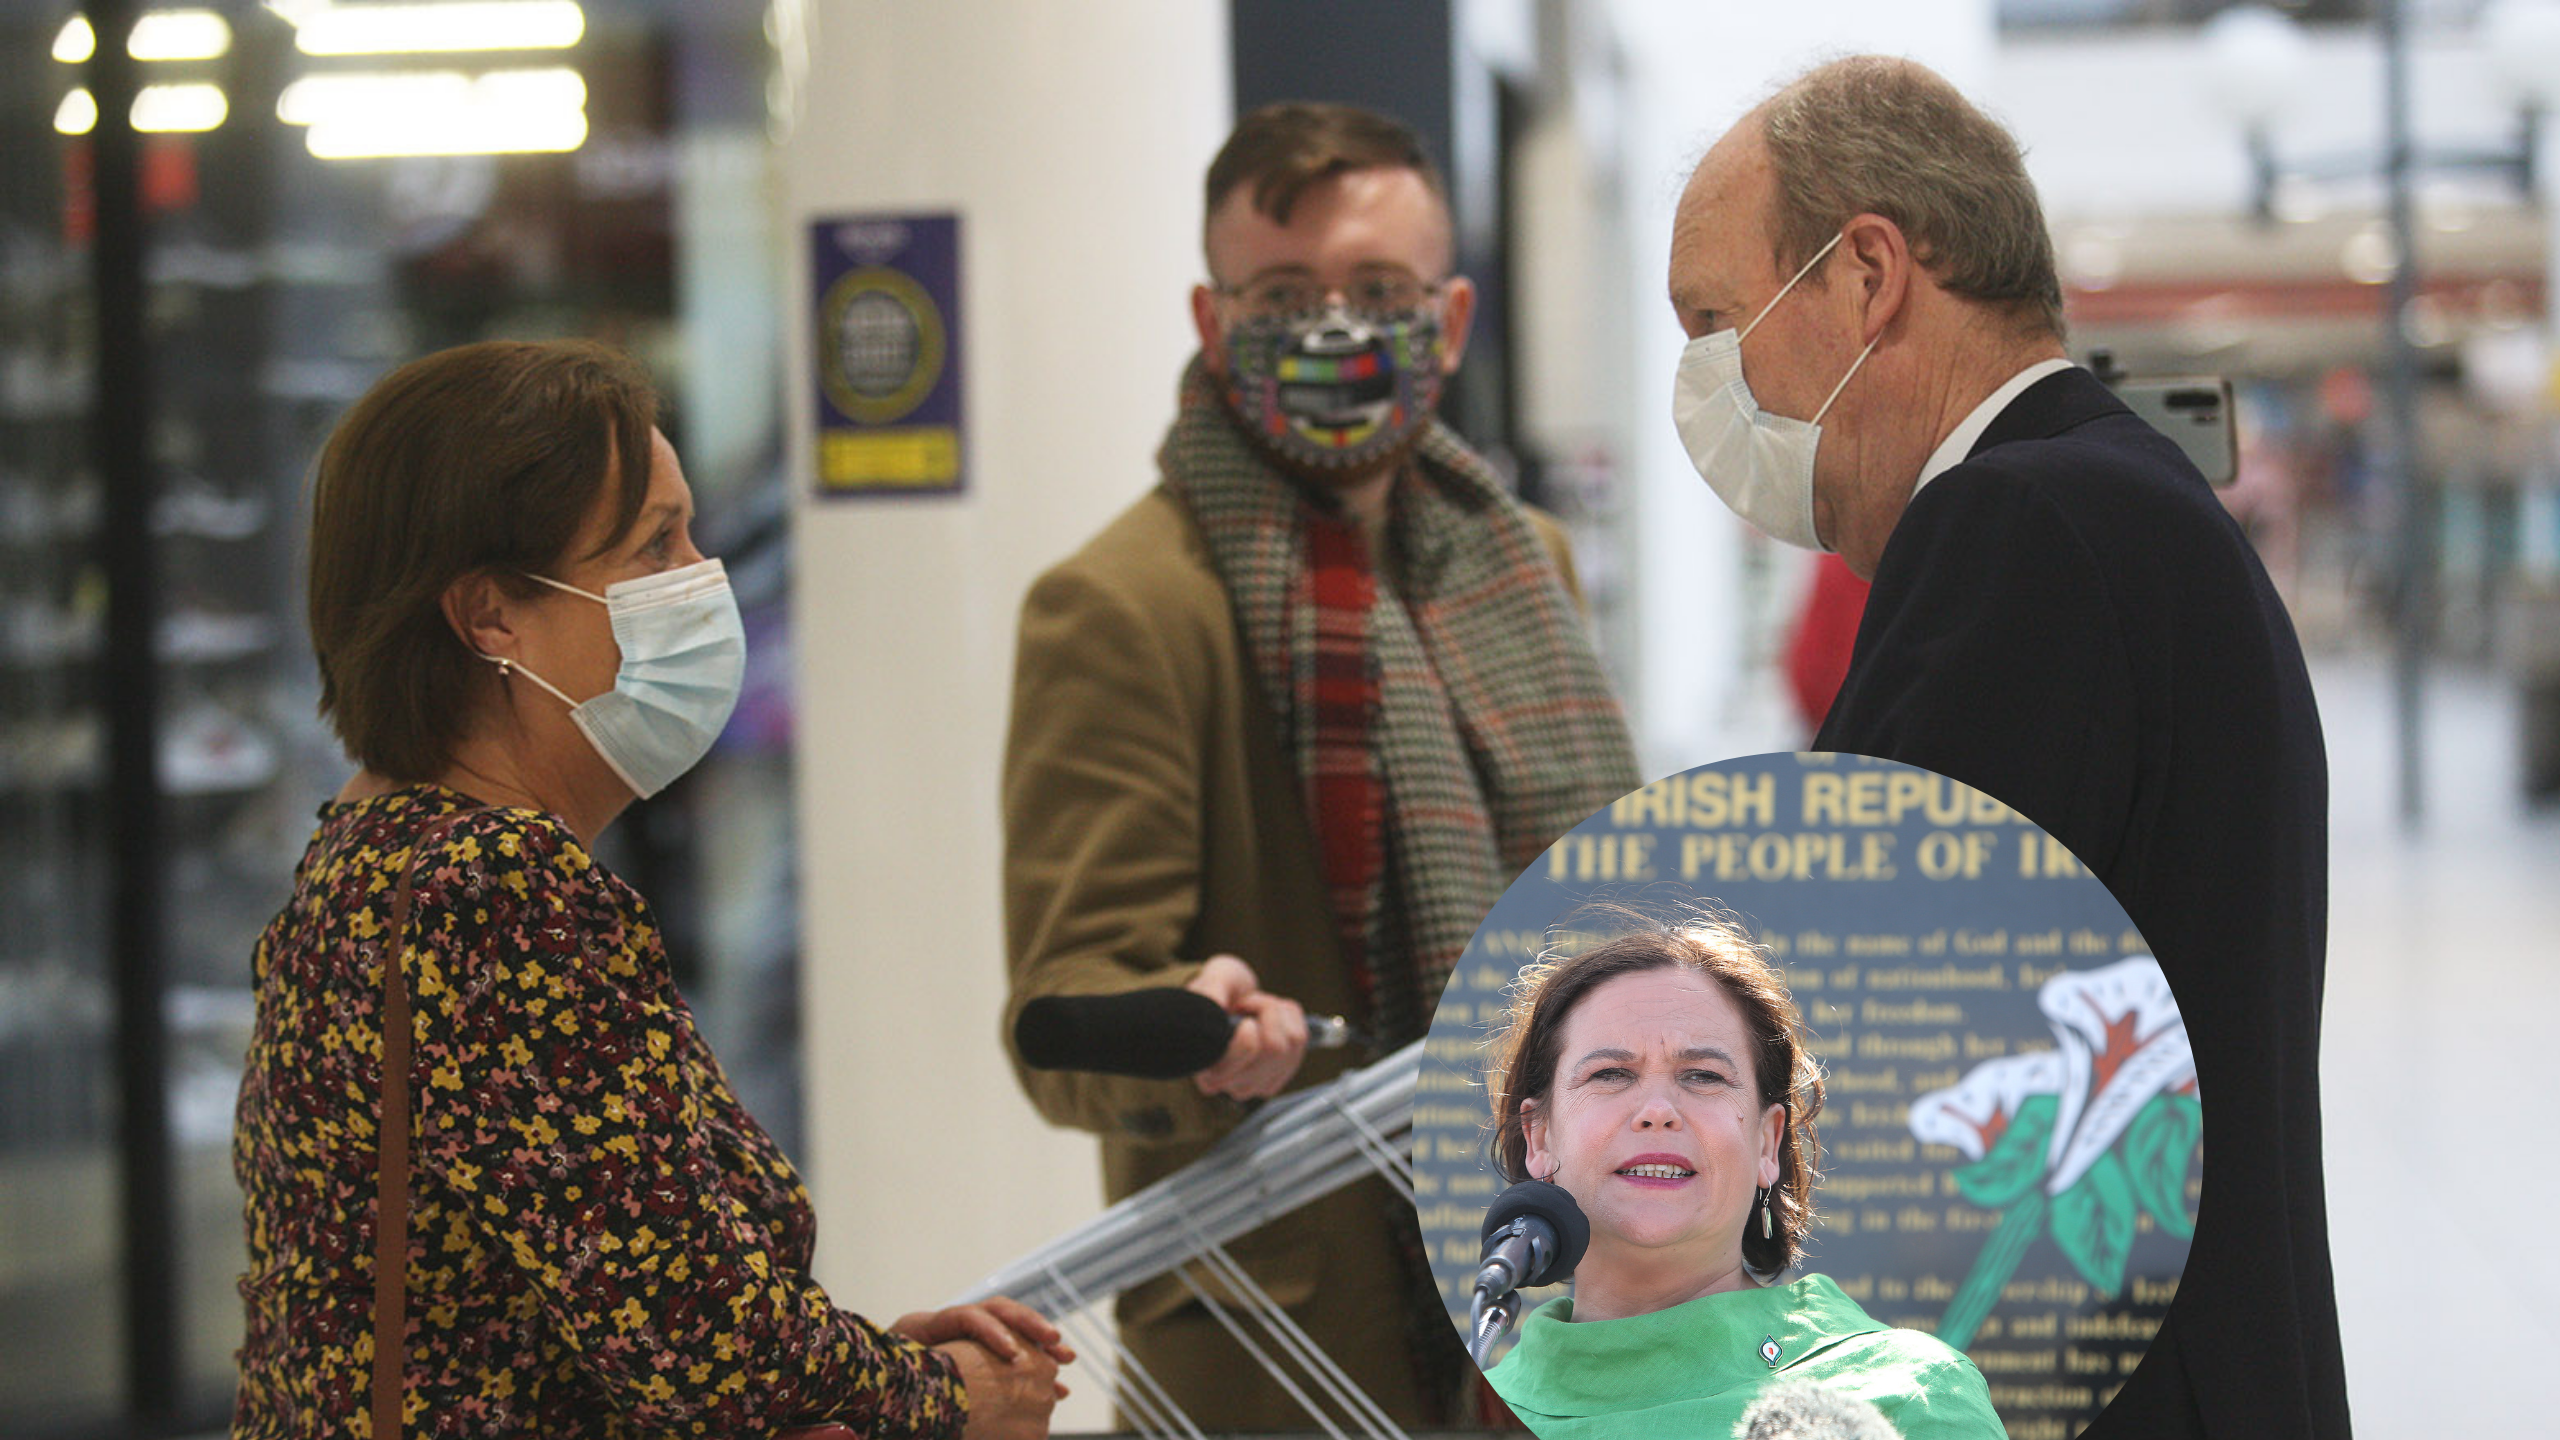 YOUR SAY: We visited the Kennedy Centre to hear your opinions on Mary Lou McDonald